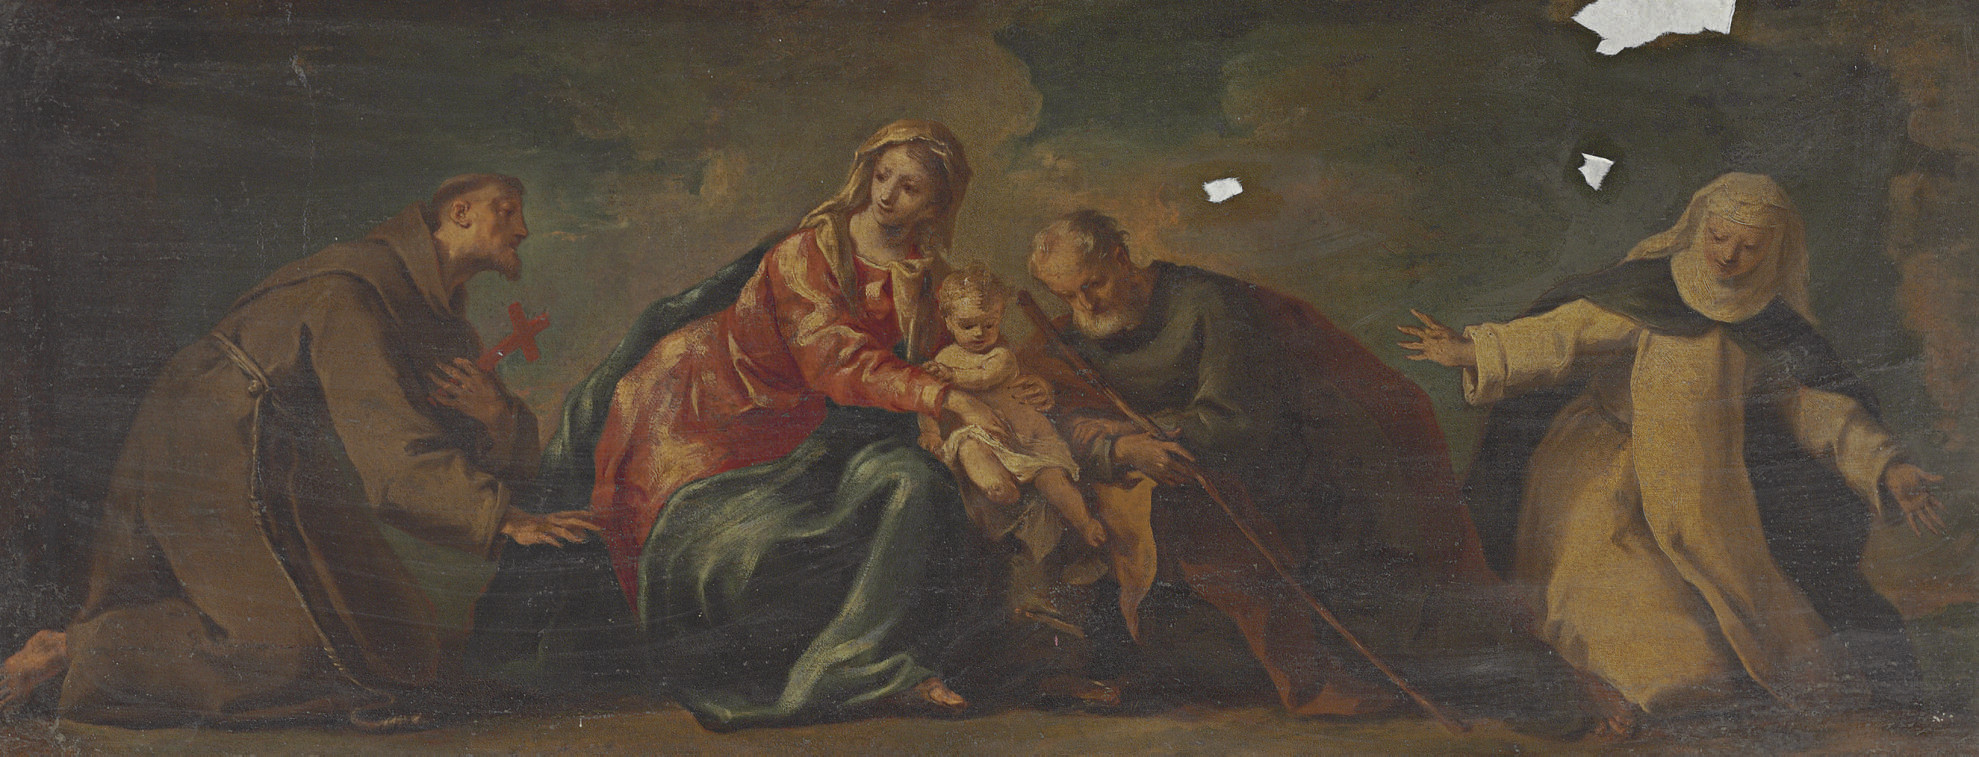 The Holy Family with Saints Francis and Catherine of Siena